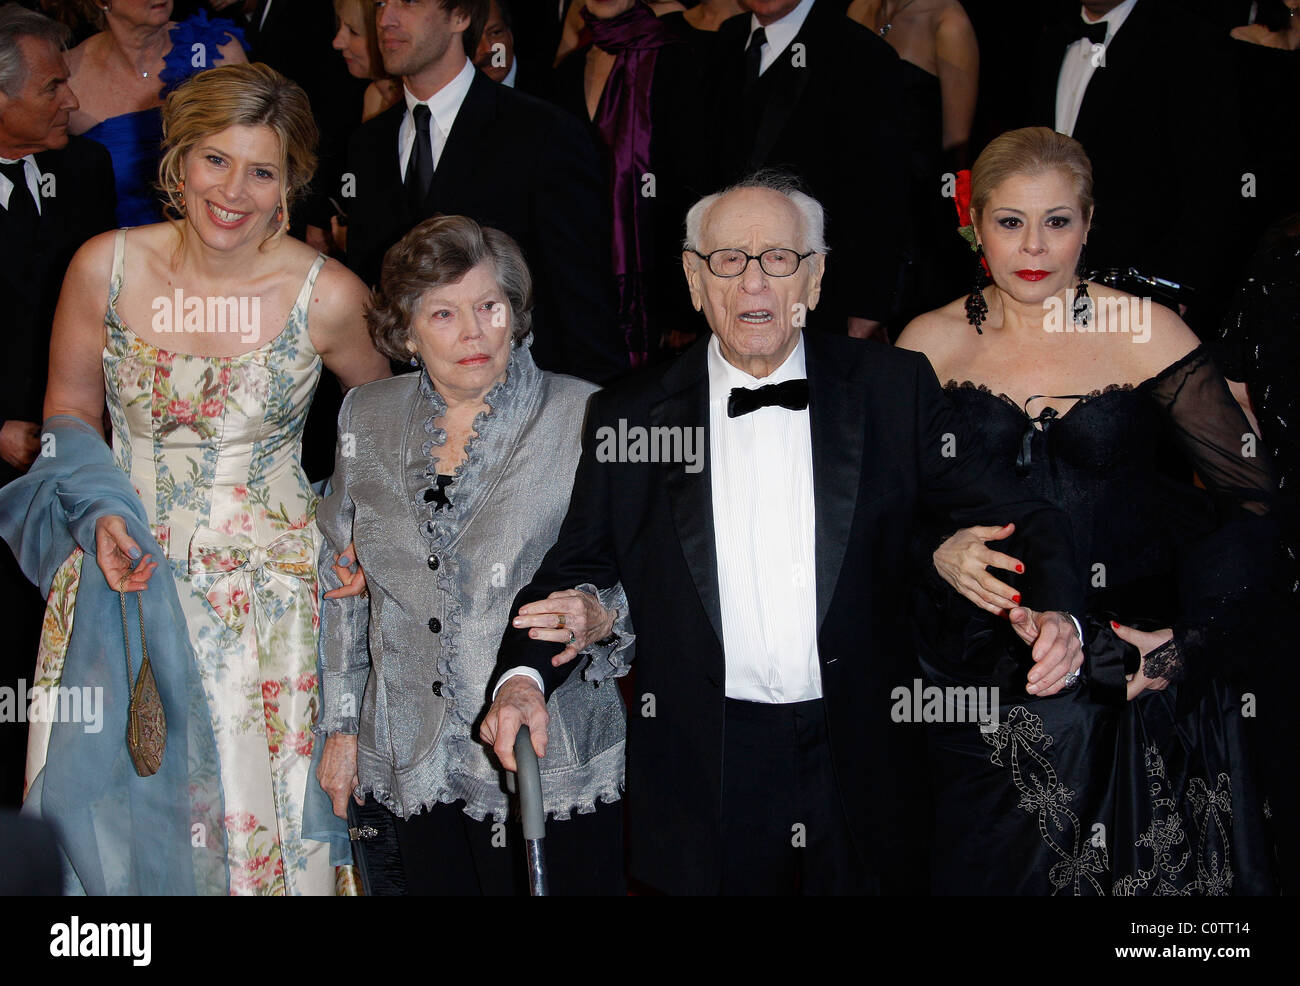 ELI WALLACH & GUESTS 83RD ACADEMY AWARDS RED CARPET ARRIVALS KODAK THEATRE LOS ANGELES CALIFORNIA USA 27 February - Stock Image